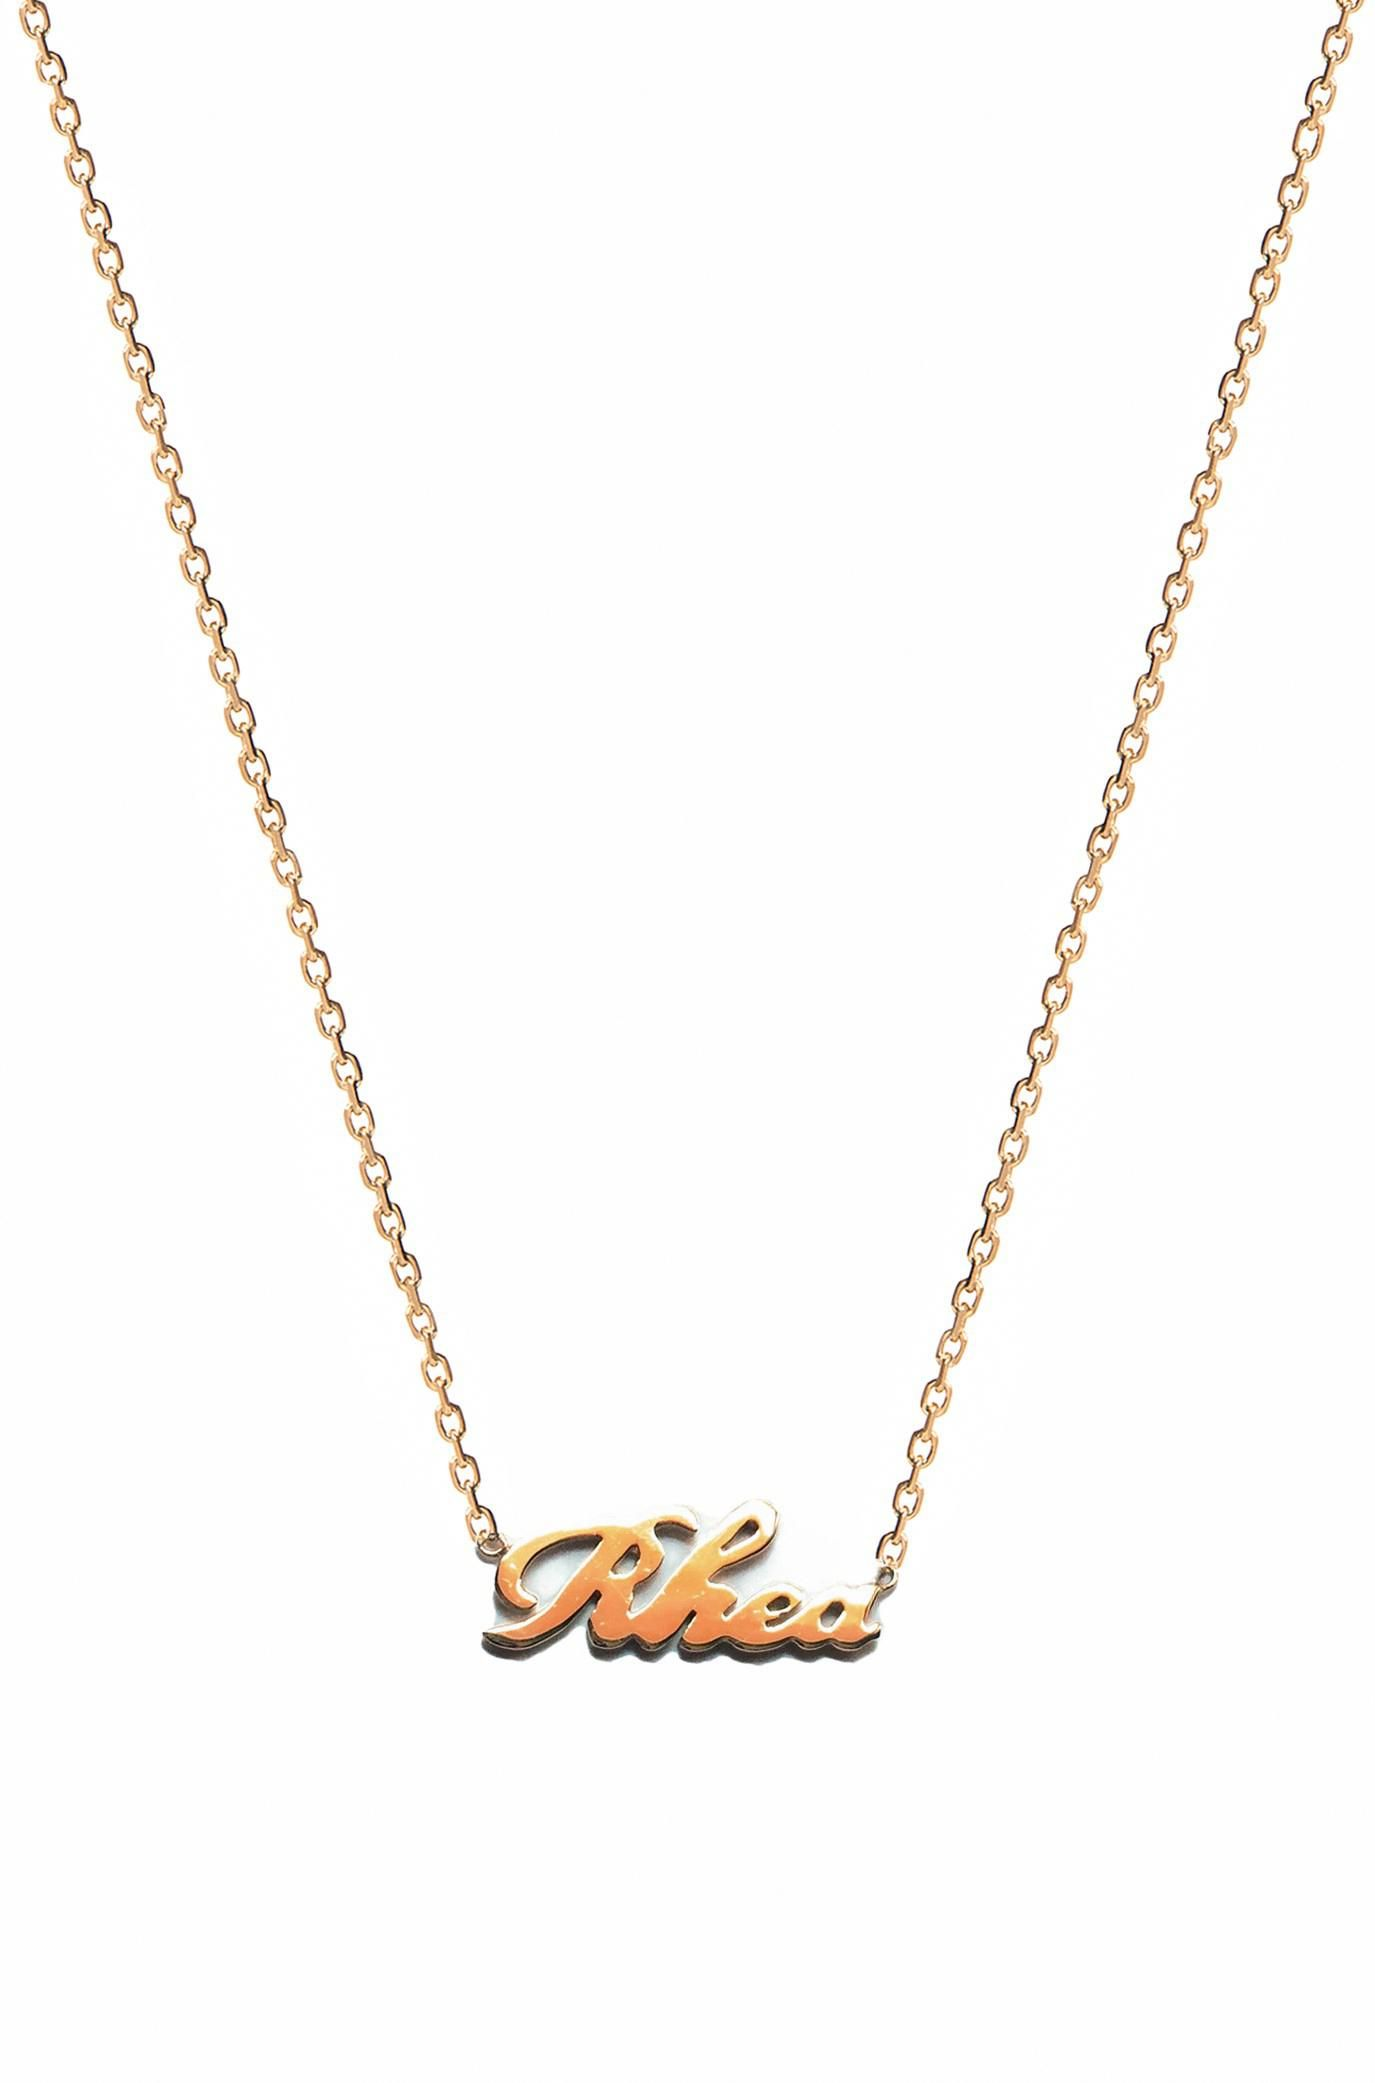 2595ffccfd6de Zoe Lev Jewelry 14K Solid Gold Name Necklace - Yellow #Lifehacks ...